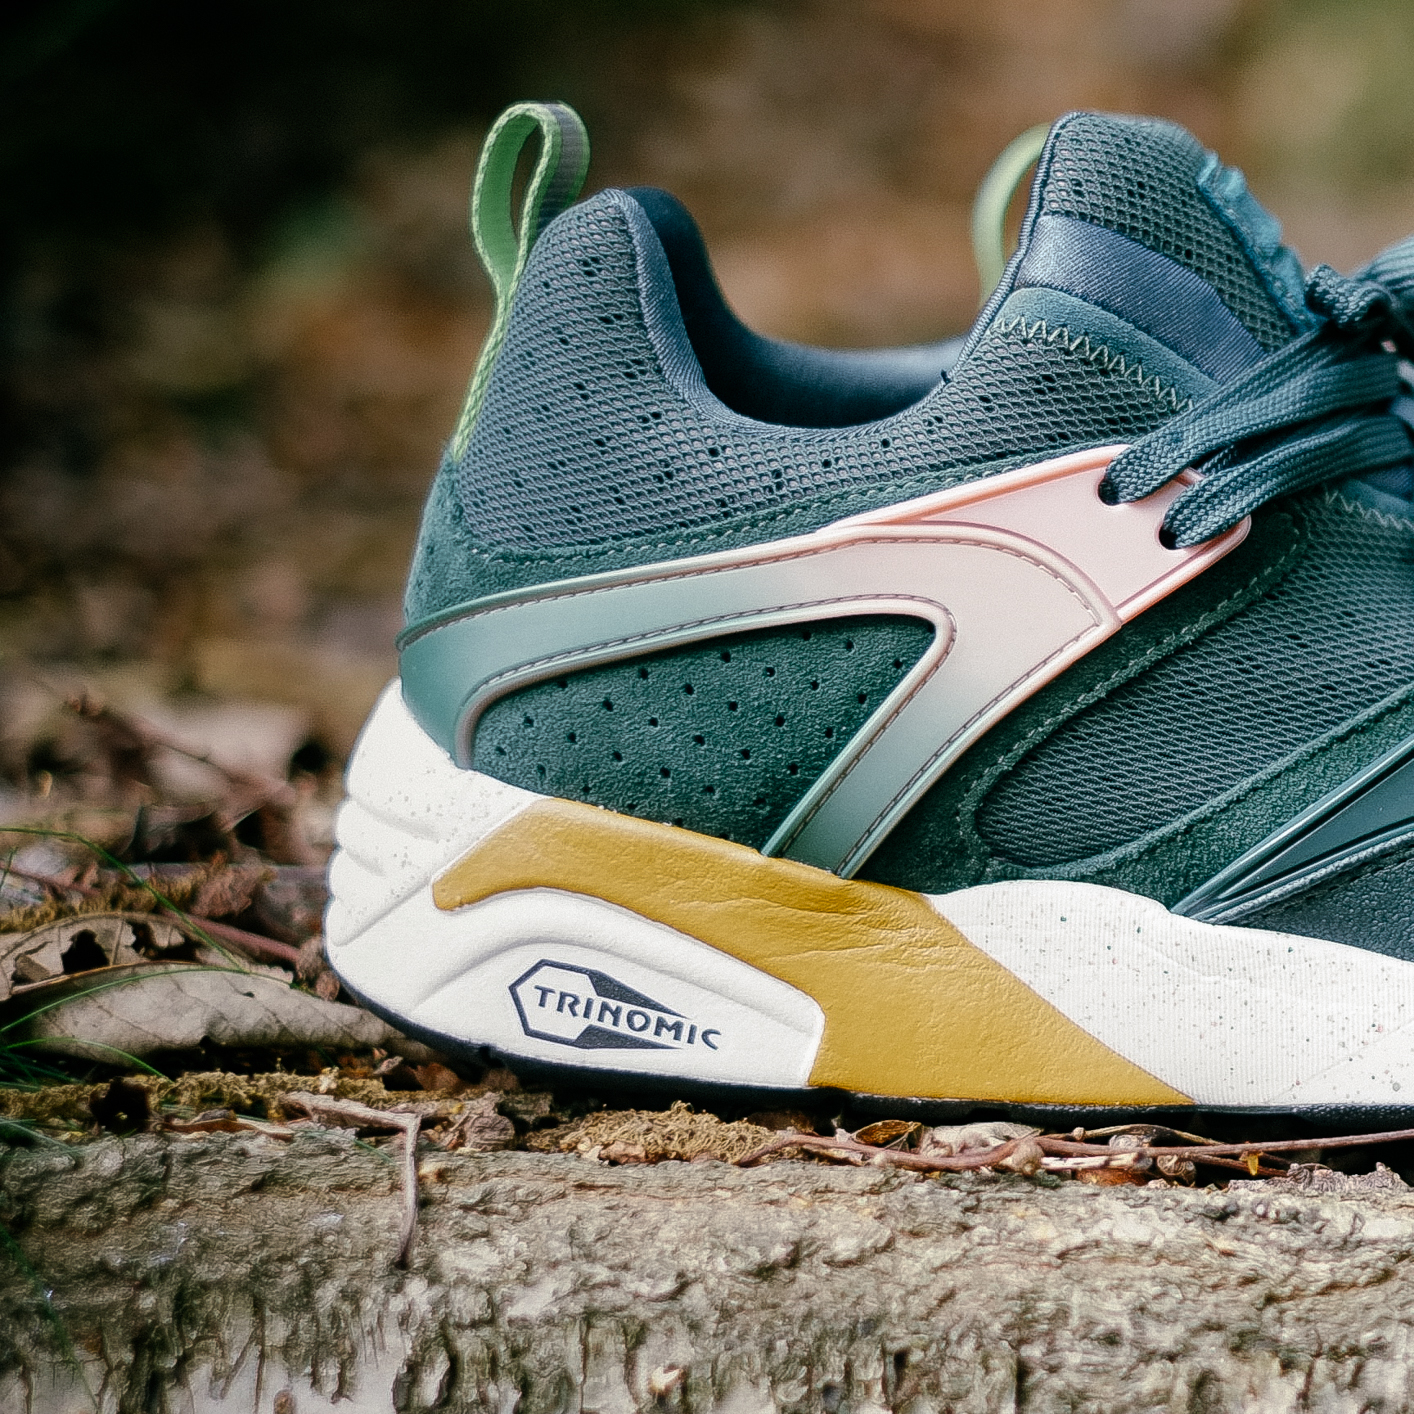 Size-Puma-Blaze-Glory-Jungle-1